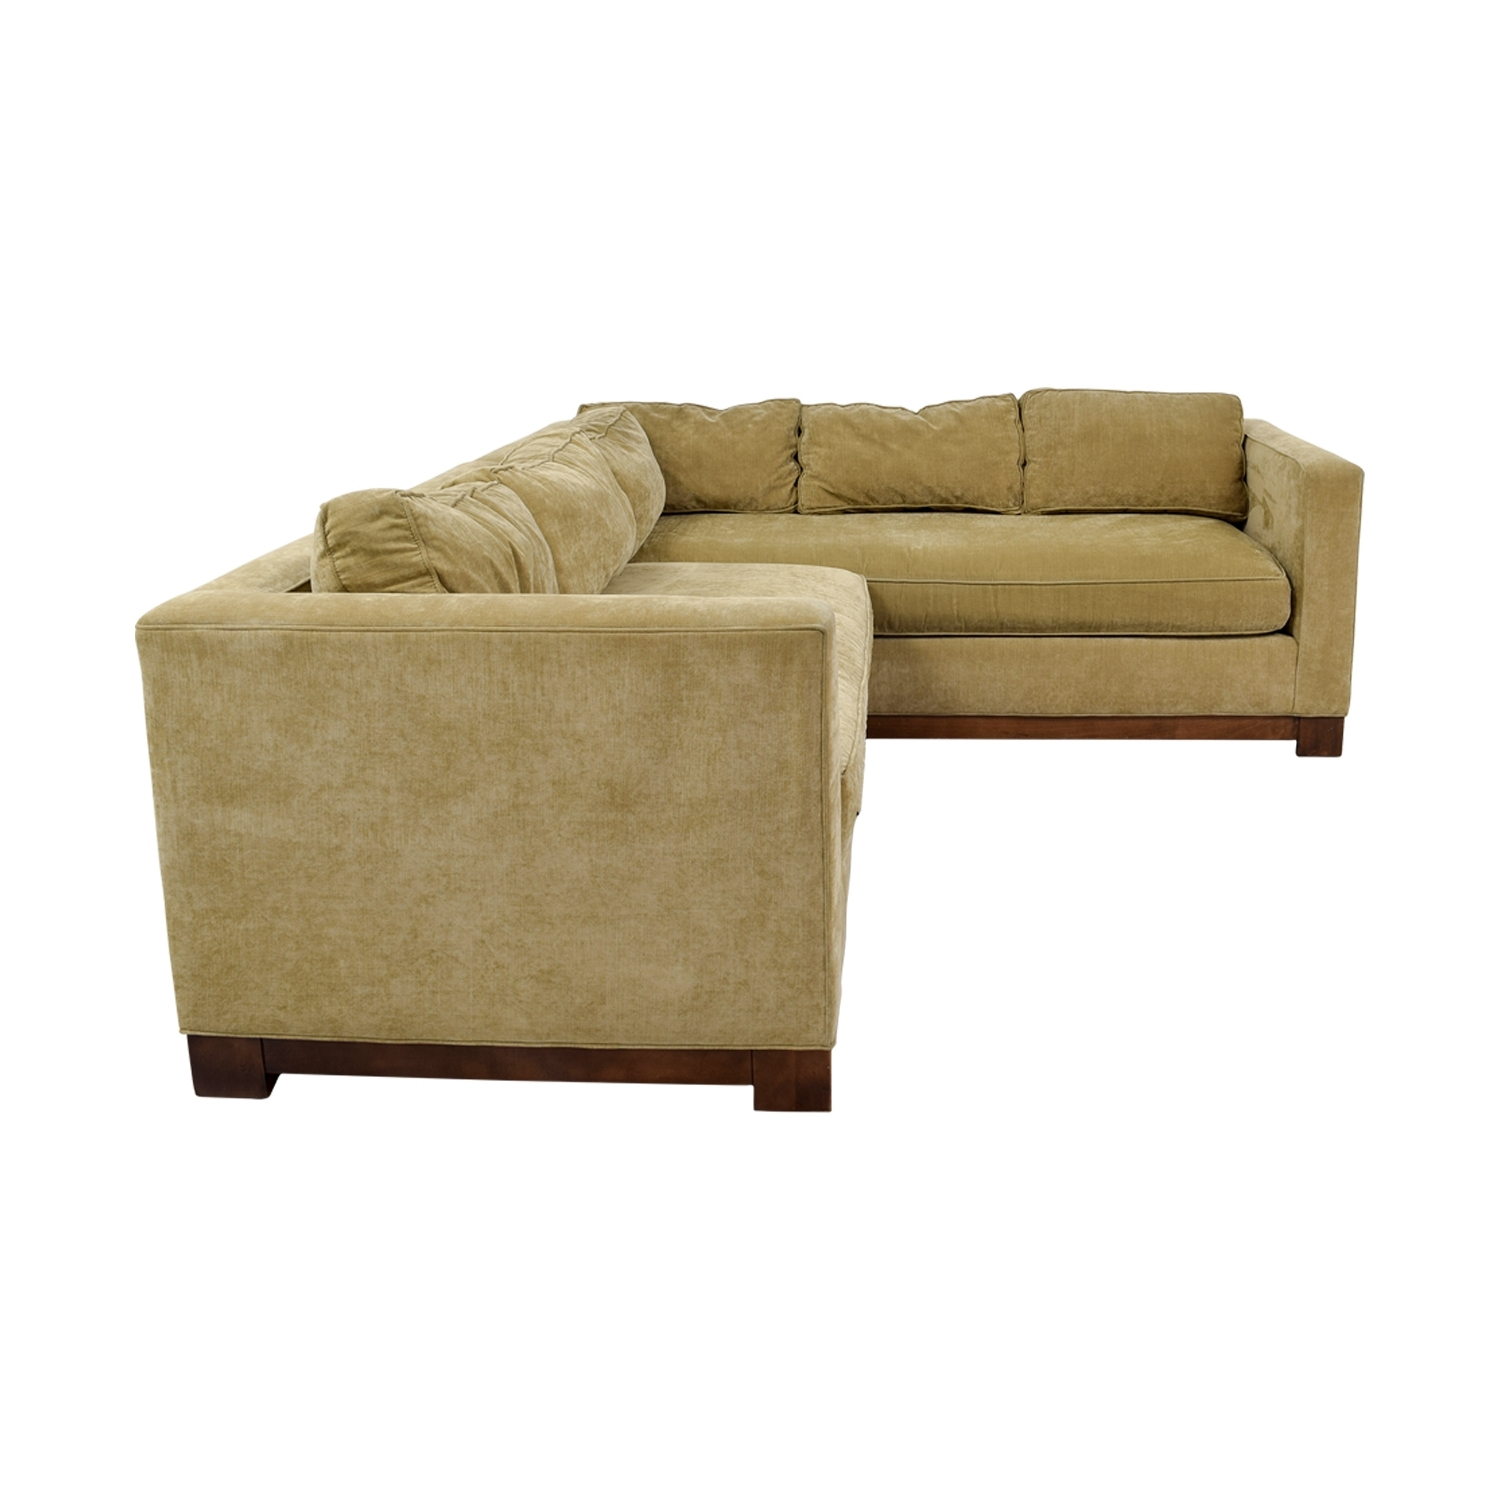 [%84% Off – Mitchell Gold + Bob Williams Mitchell Gold + Bob Throughout Well Known Gold Sectional Sofas|Gold Sectional Sofas Throughout Well Known 84% Off – Mitchell Gold + Bob Williams Mitchell Gold + Bob|Most Current Gold Sectional Sofas Pertaining To 84% Off – Mitchell Gold + Bob Williams Mitchell Gold + Bob|Most Popular 84% Off – Mitchell Gold + Bob Williams Mitchell Gold + Bob For Gold Sectional Sofas%] (View 12 of 15)